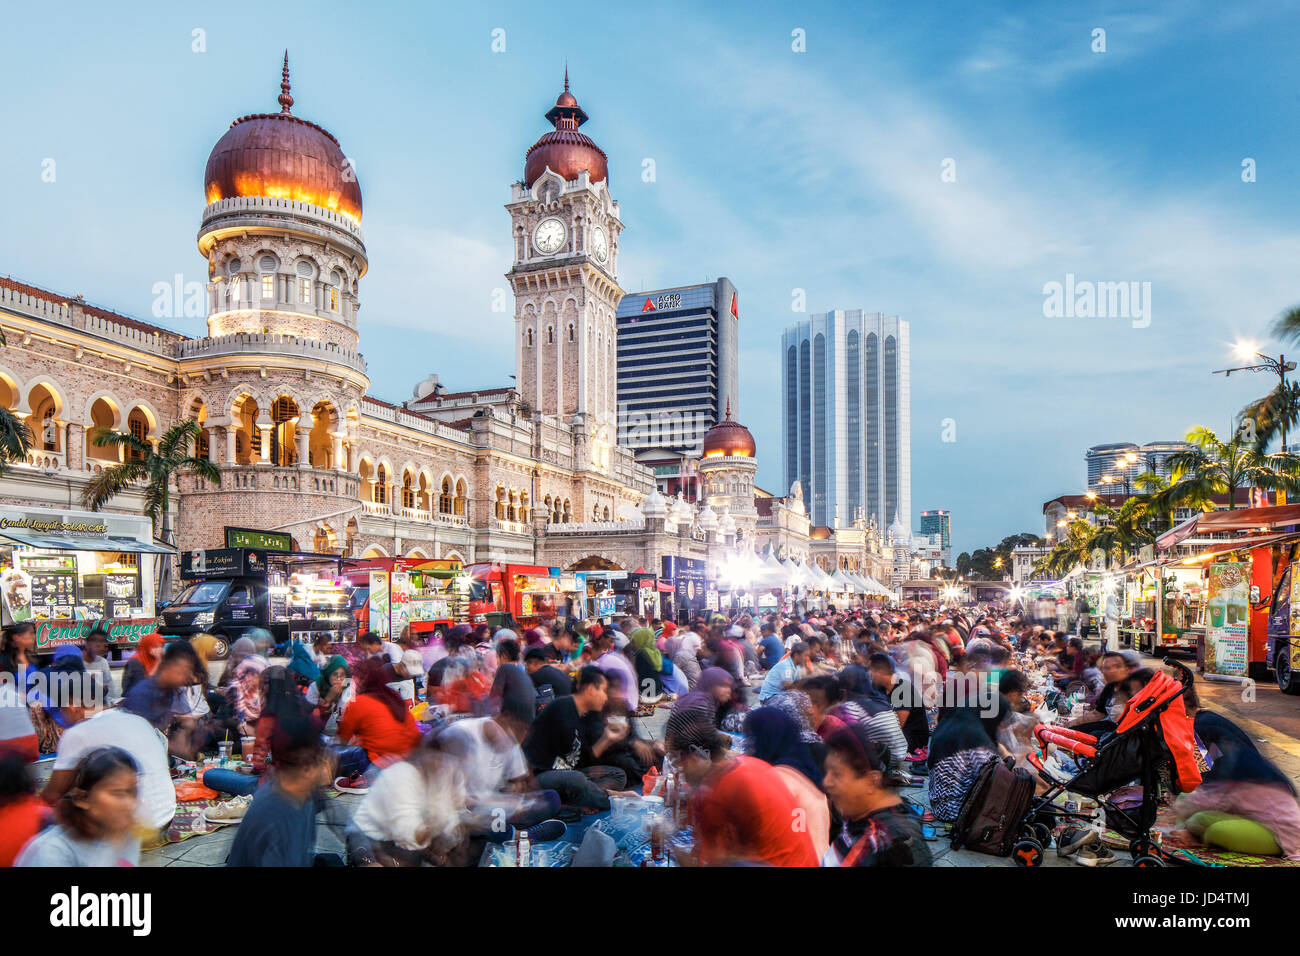 The mass breaking of fast during the month of syawal in Merdeka Square, Kuala Lumpur. Stock Photo